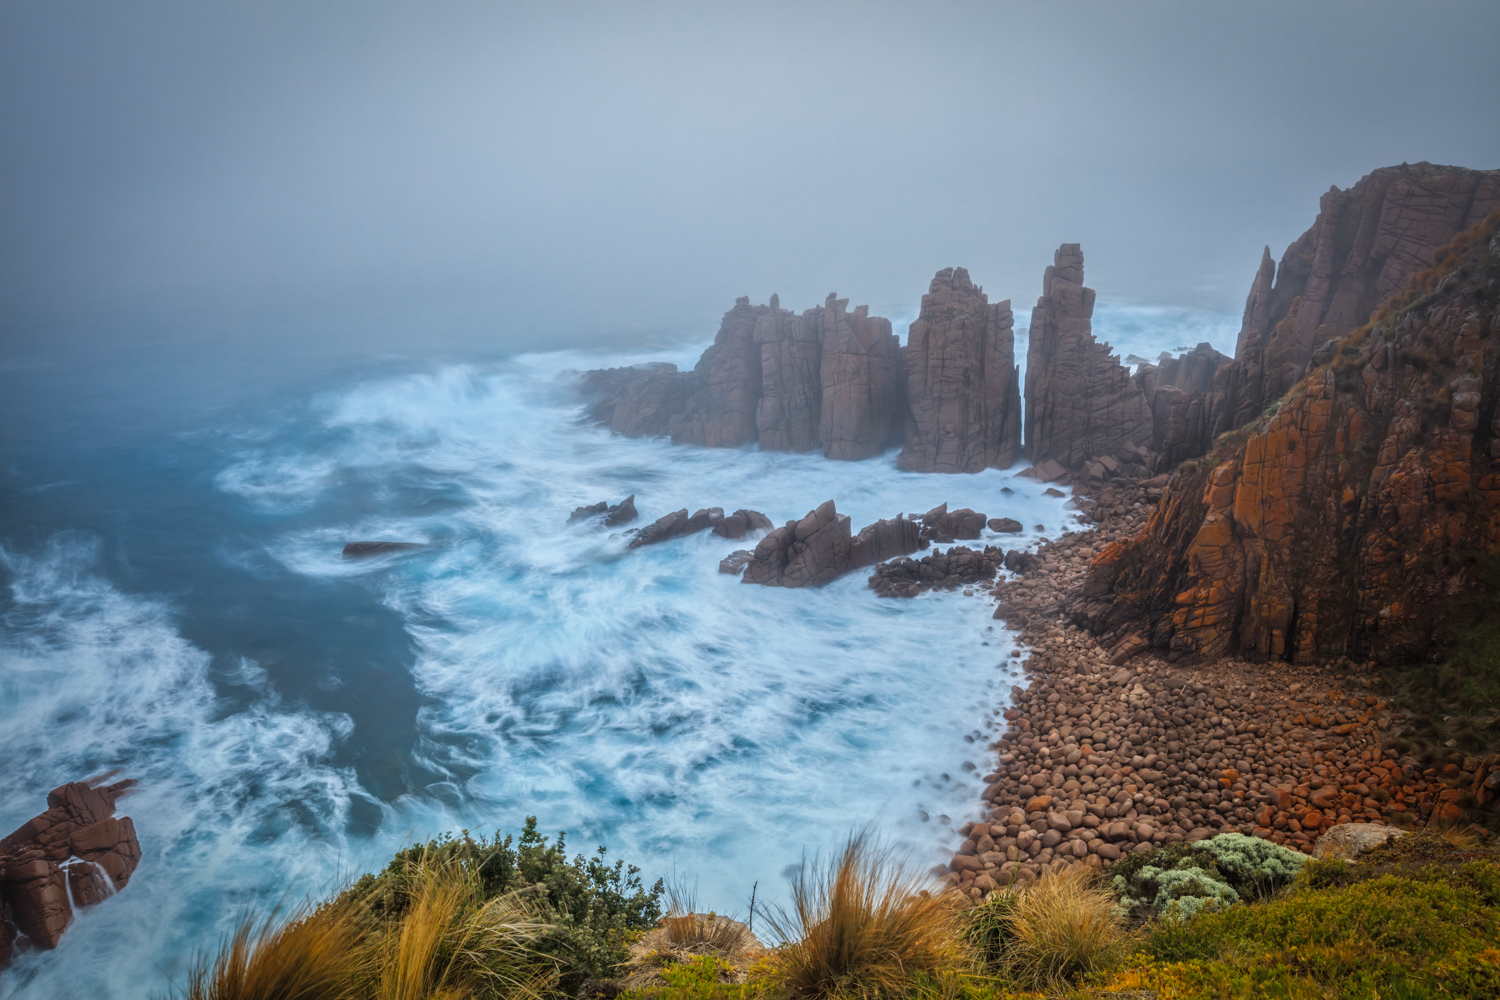 Landscape and Panorama Photography Workshop, Phillip Island - The Pinnacles at Cape Woolamai, Victoria Australia.